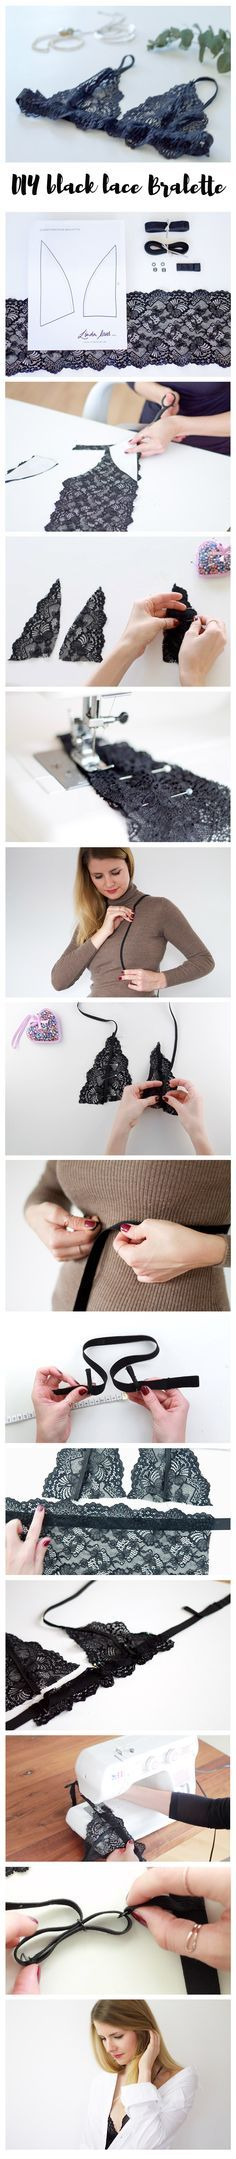 Black lace Bralette DIY - A fun and easy do it yourself project for the summer ... you can buy a complete  DIY Material Kit via https://lindaloves.de/produkt/bralette-schwarz/